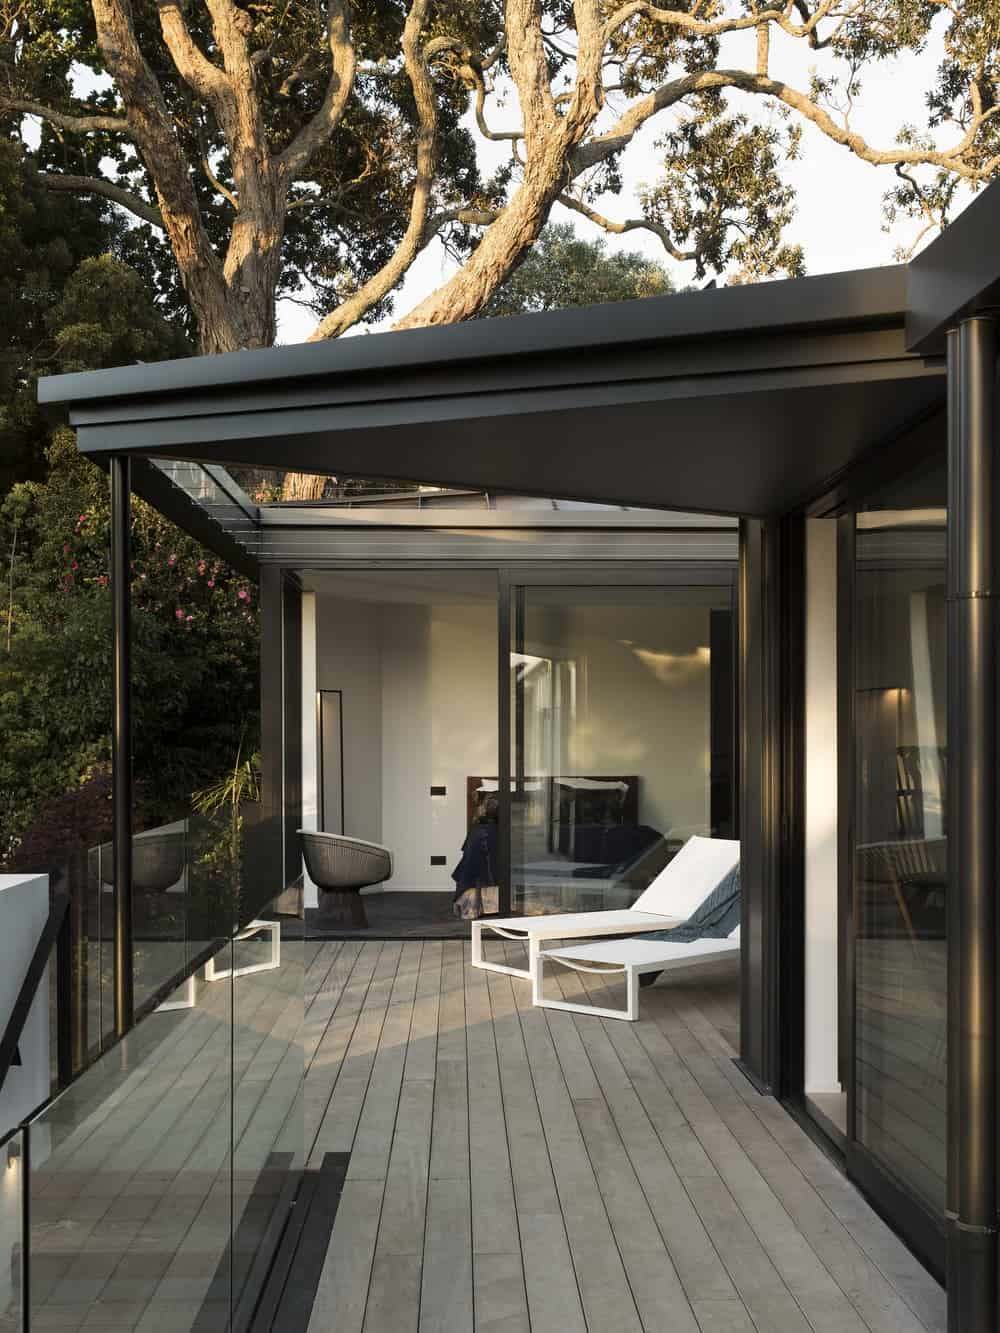 Patio in the Herne Bay Hideaway designed by Lloyd Hartley Architects.